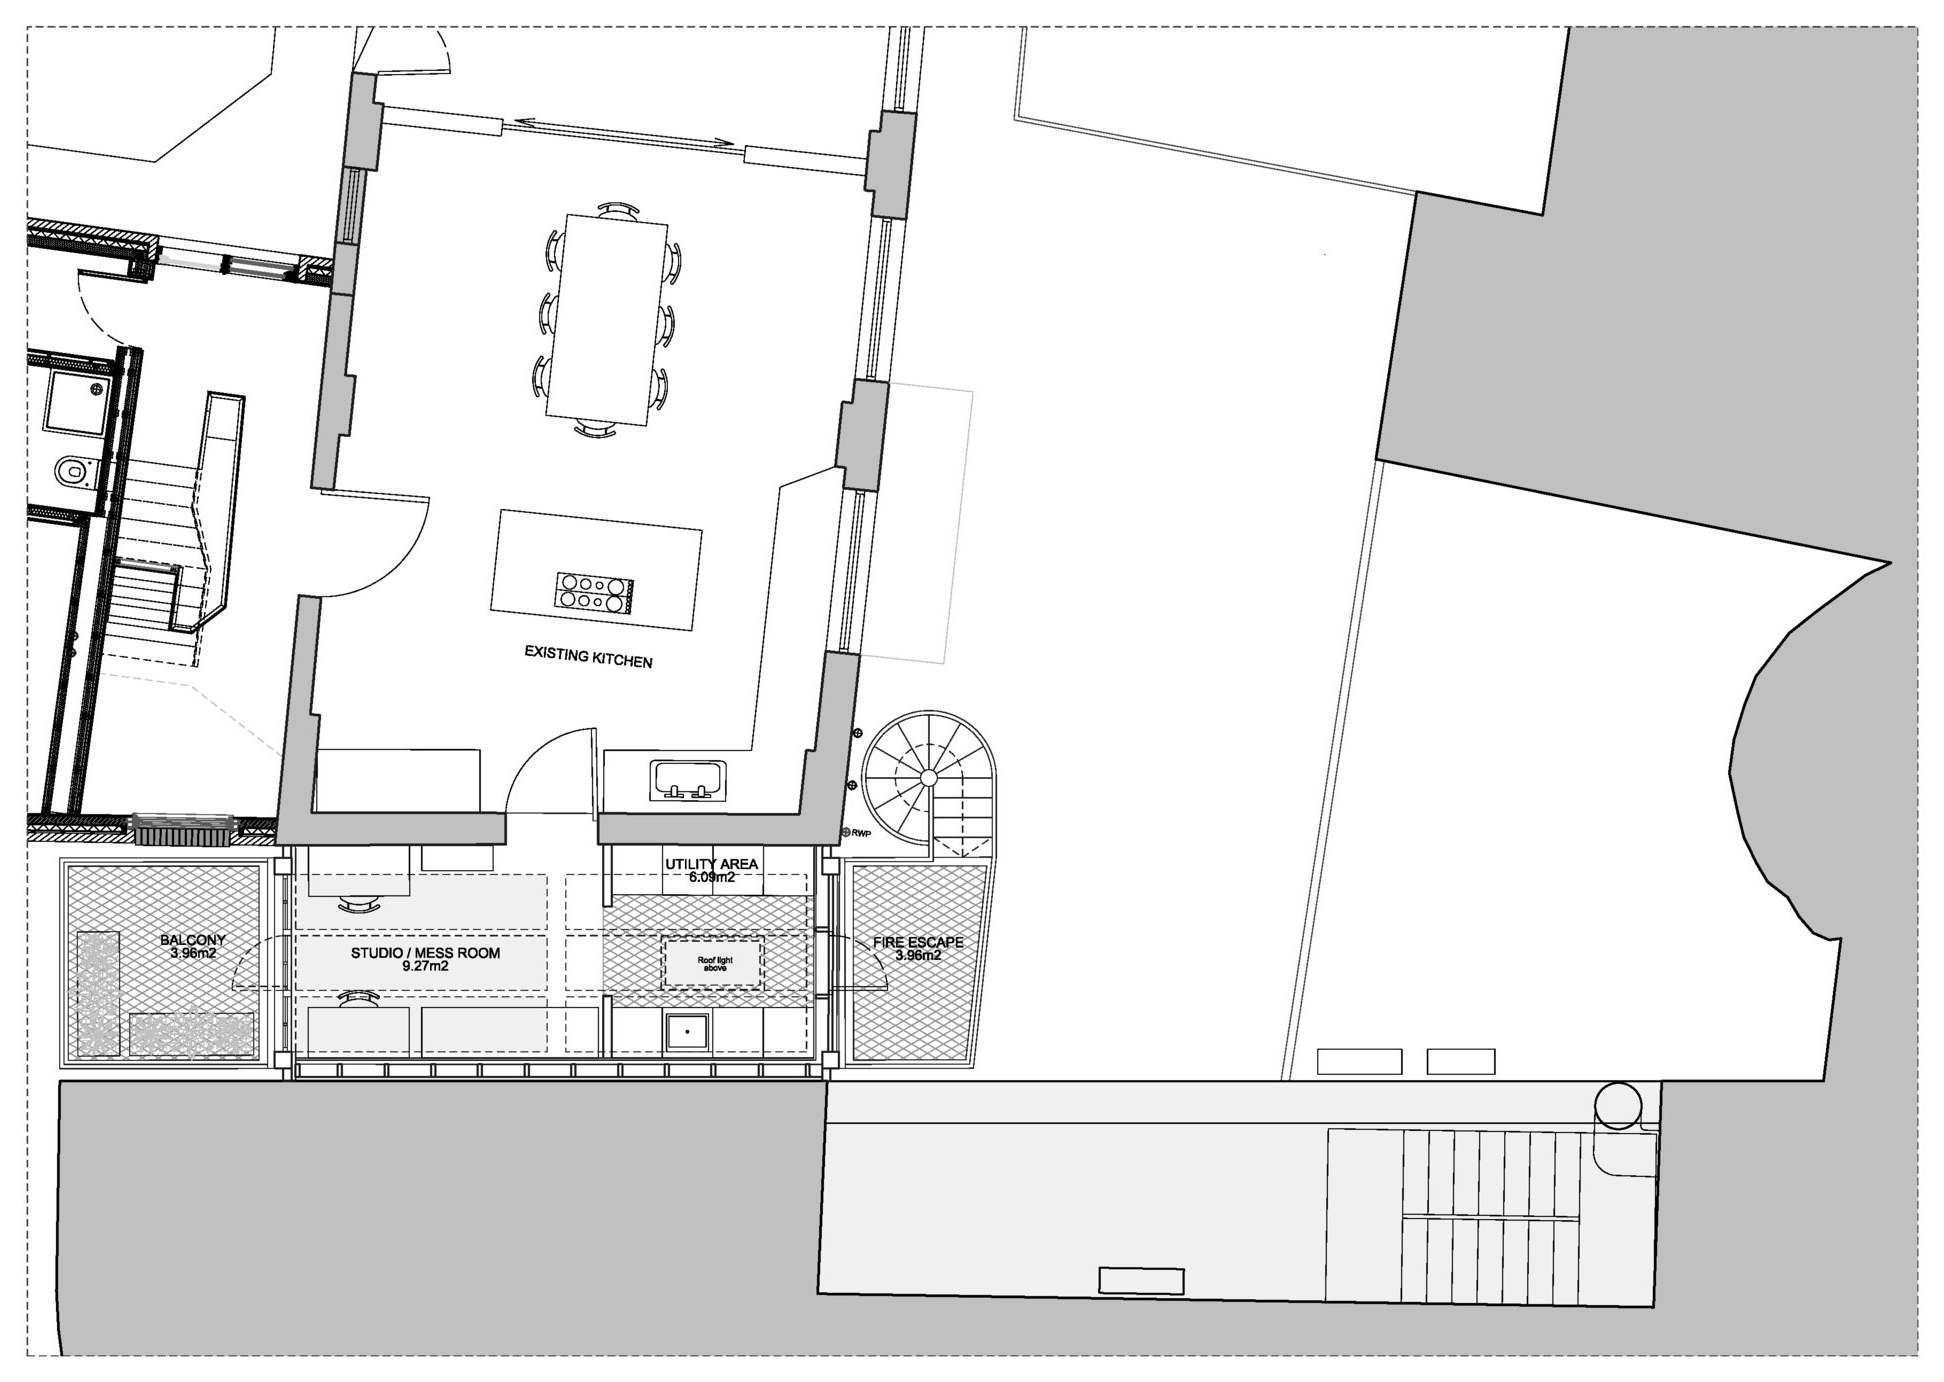 First floor plan showing access from the existing house kitchen